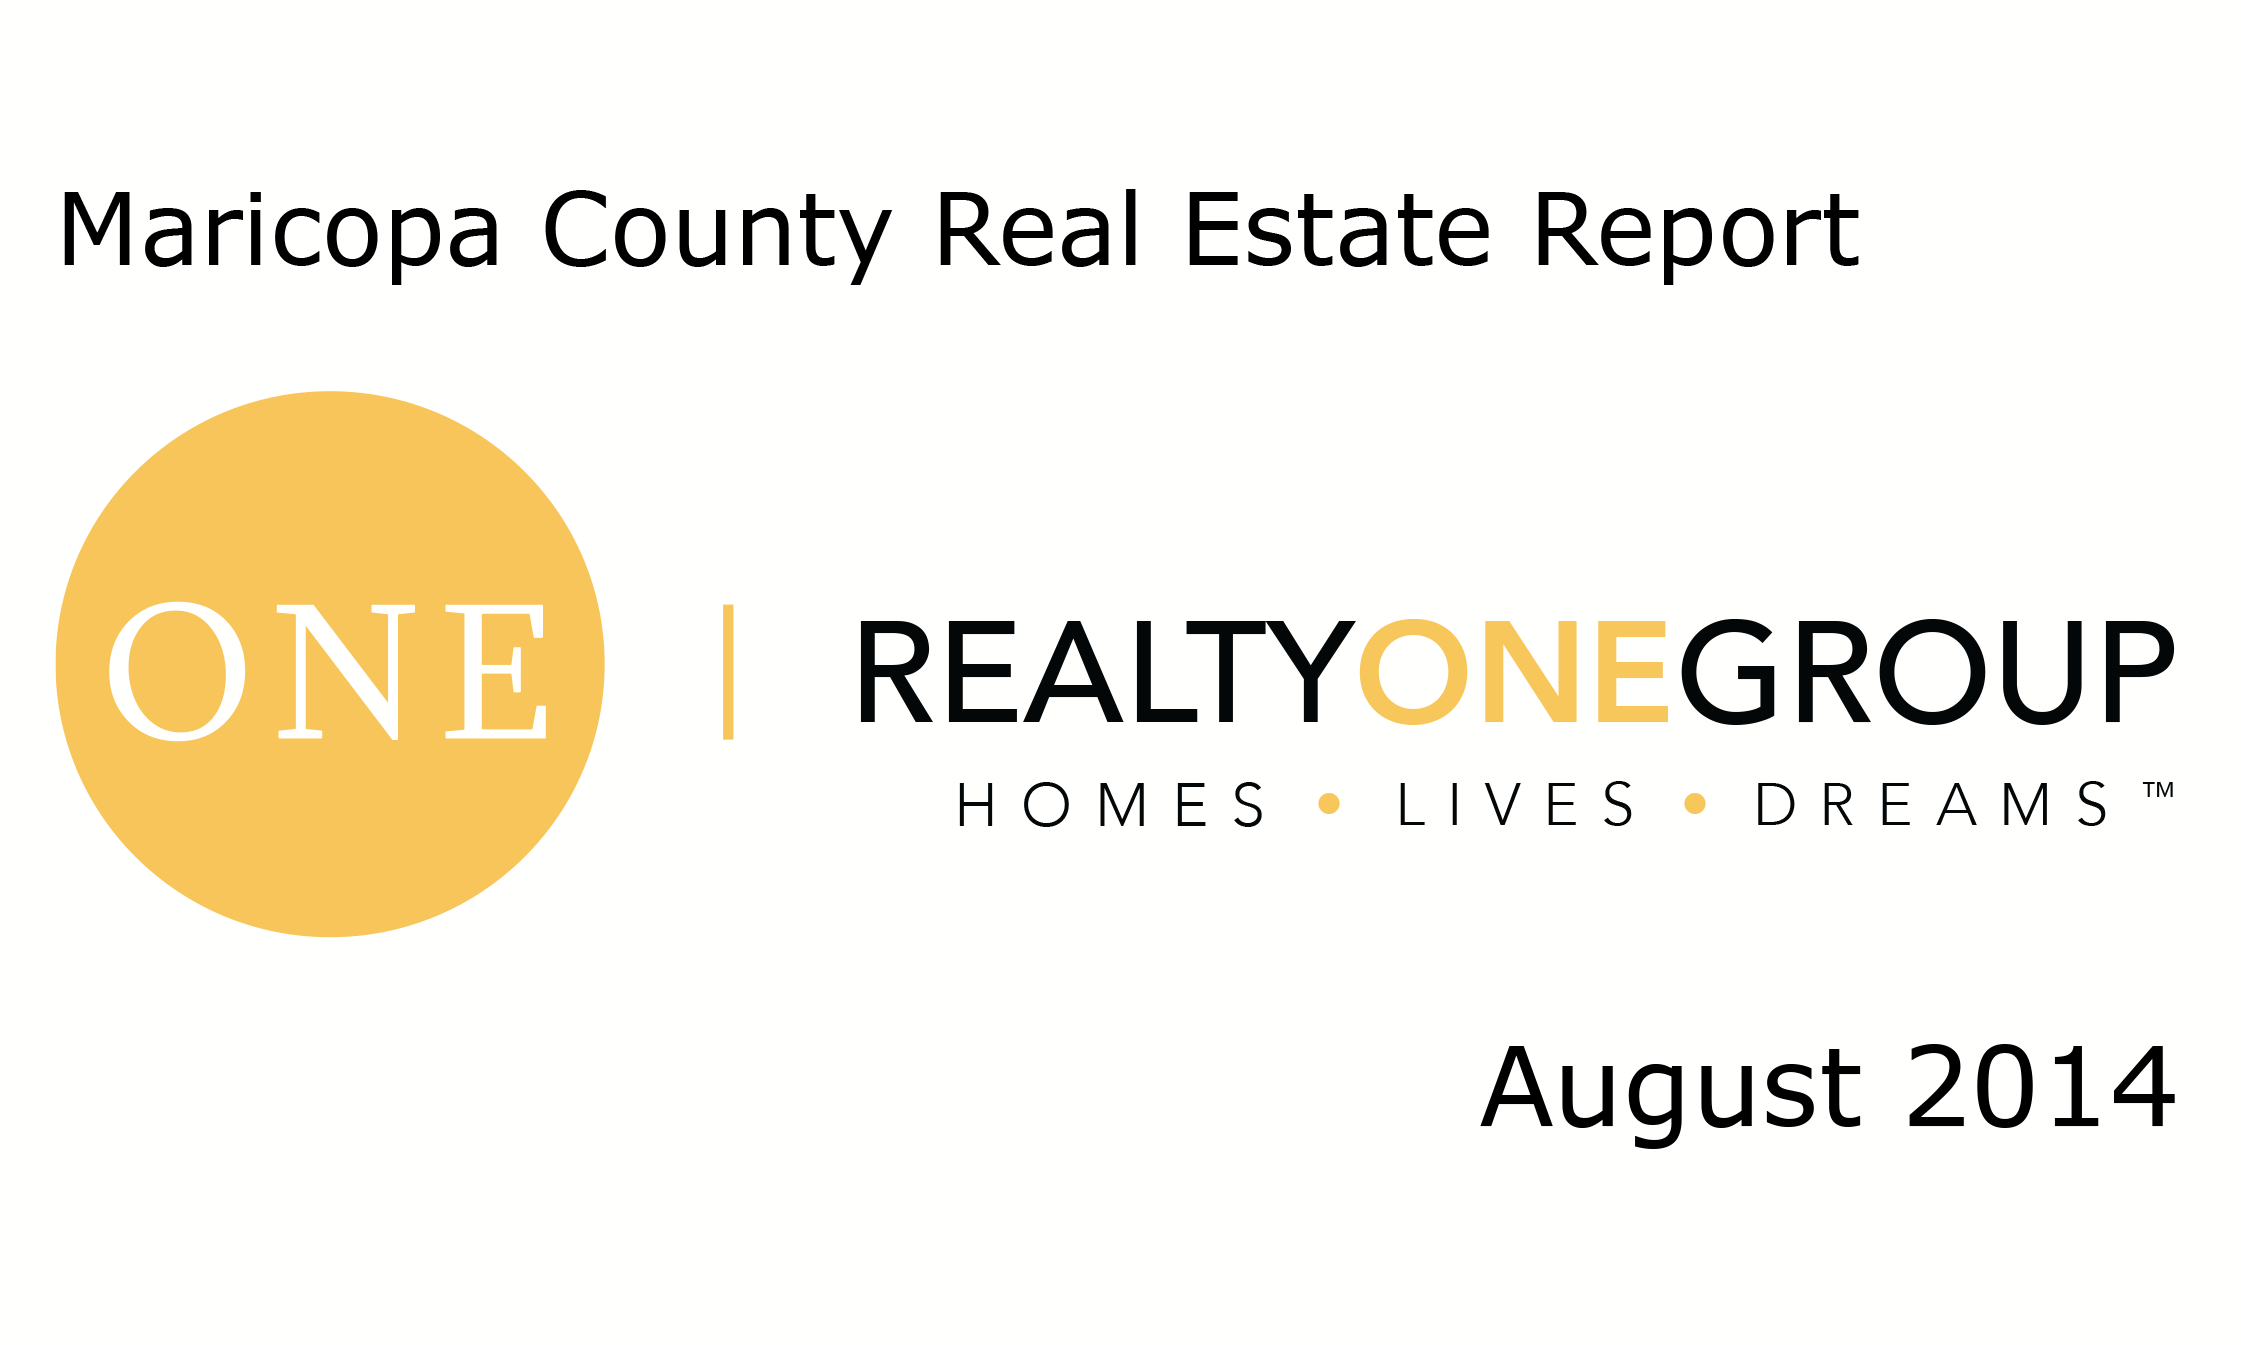 Maricopa County Real Estate Report August 2014